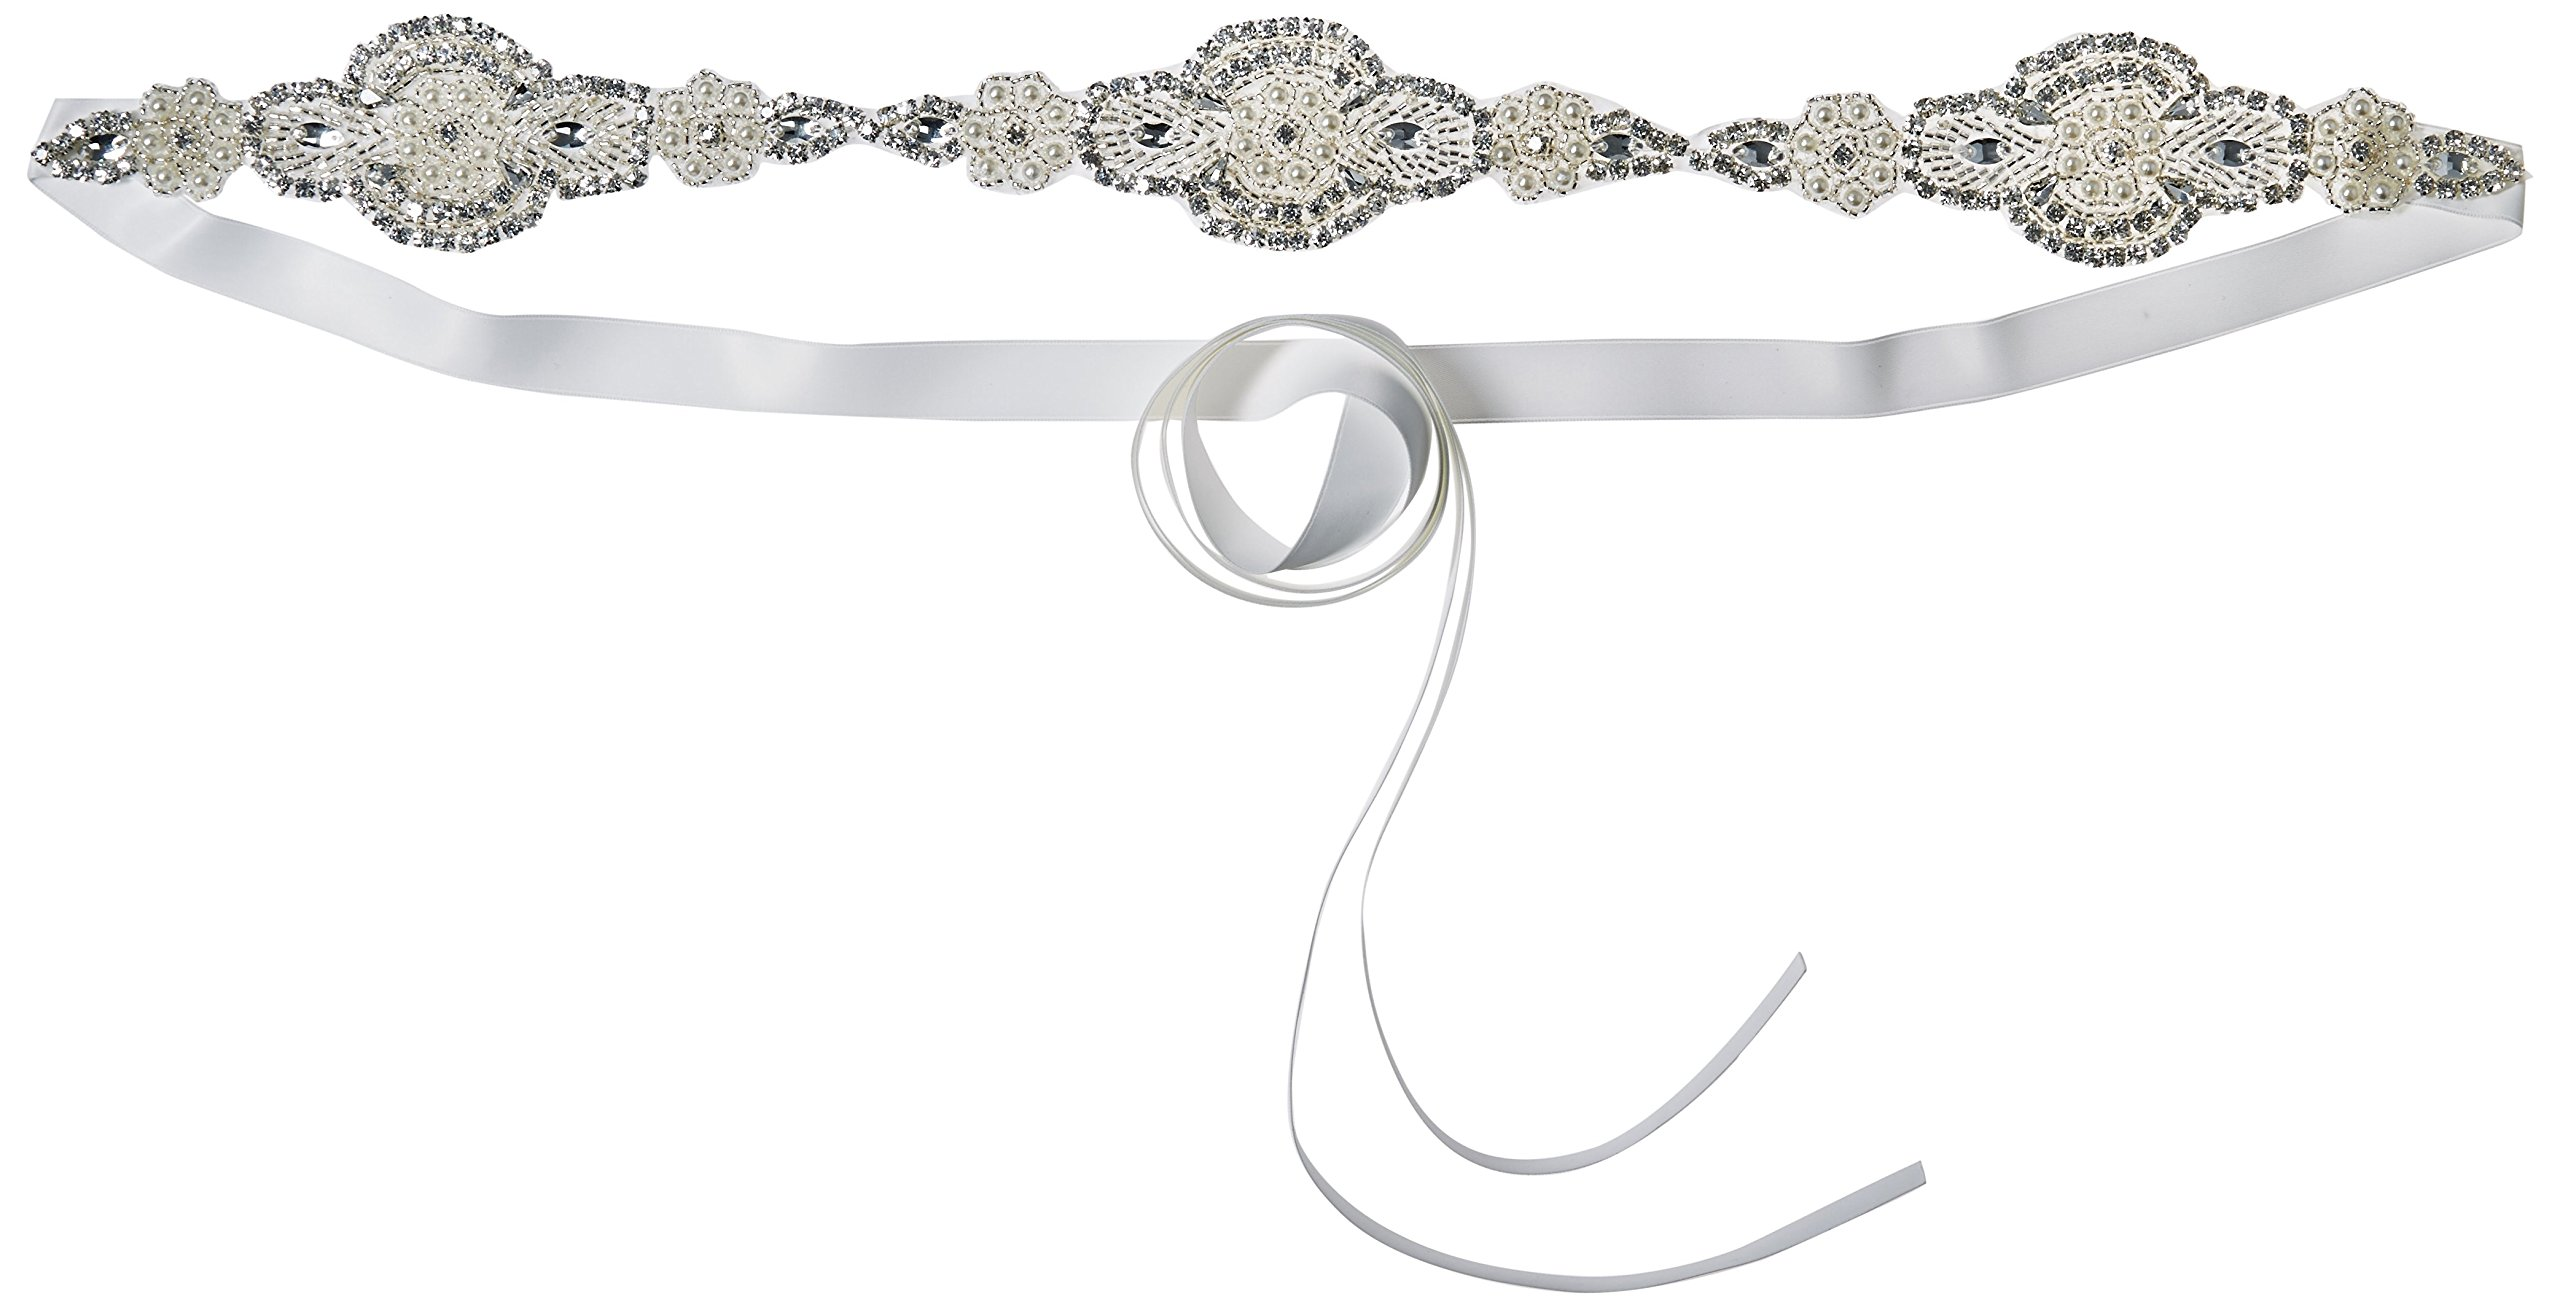 J-Picone Women's Bolton Hard Rock Crystal Bridal Belt with Crystal Appliques, Ivory, One Size